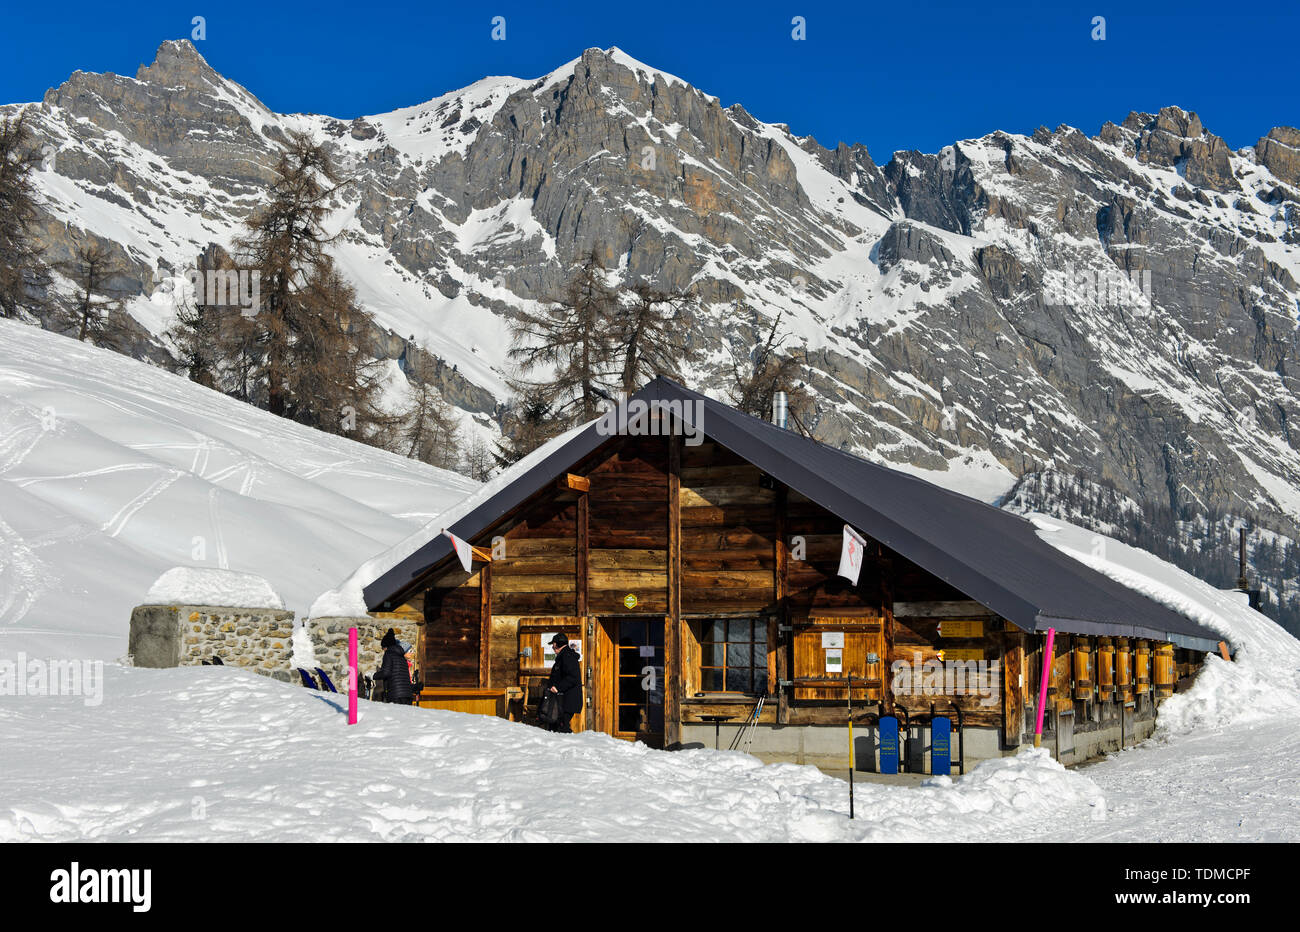 Mountain Inn Loutze im Winter, Ovronnaz, Wallis, Schweiz Stockbild